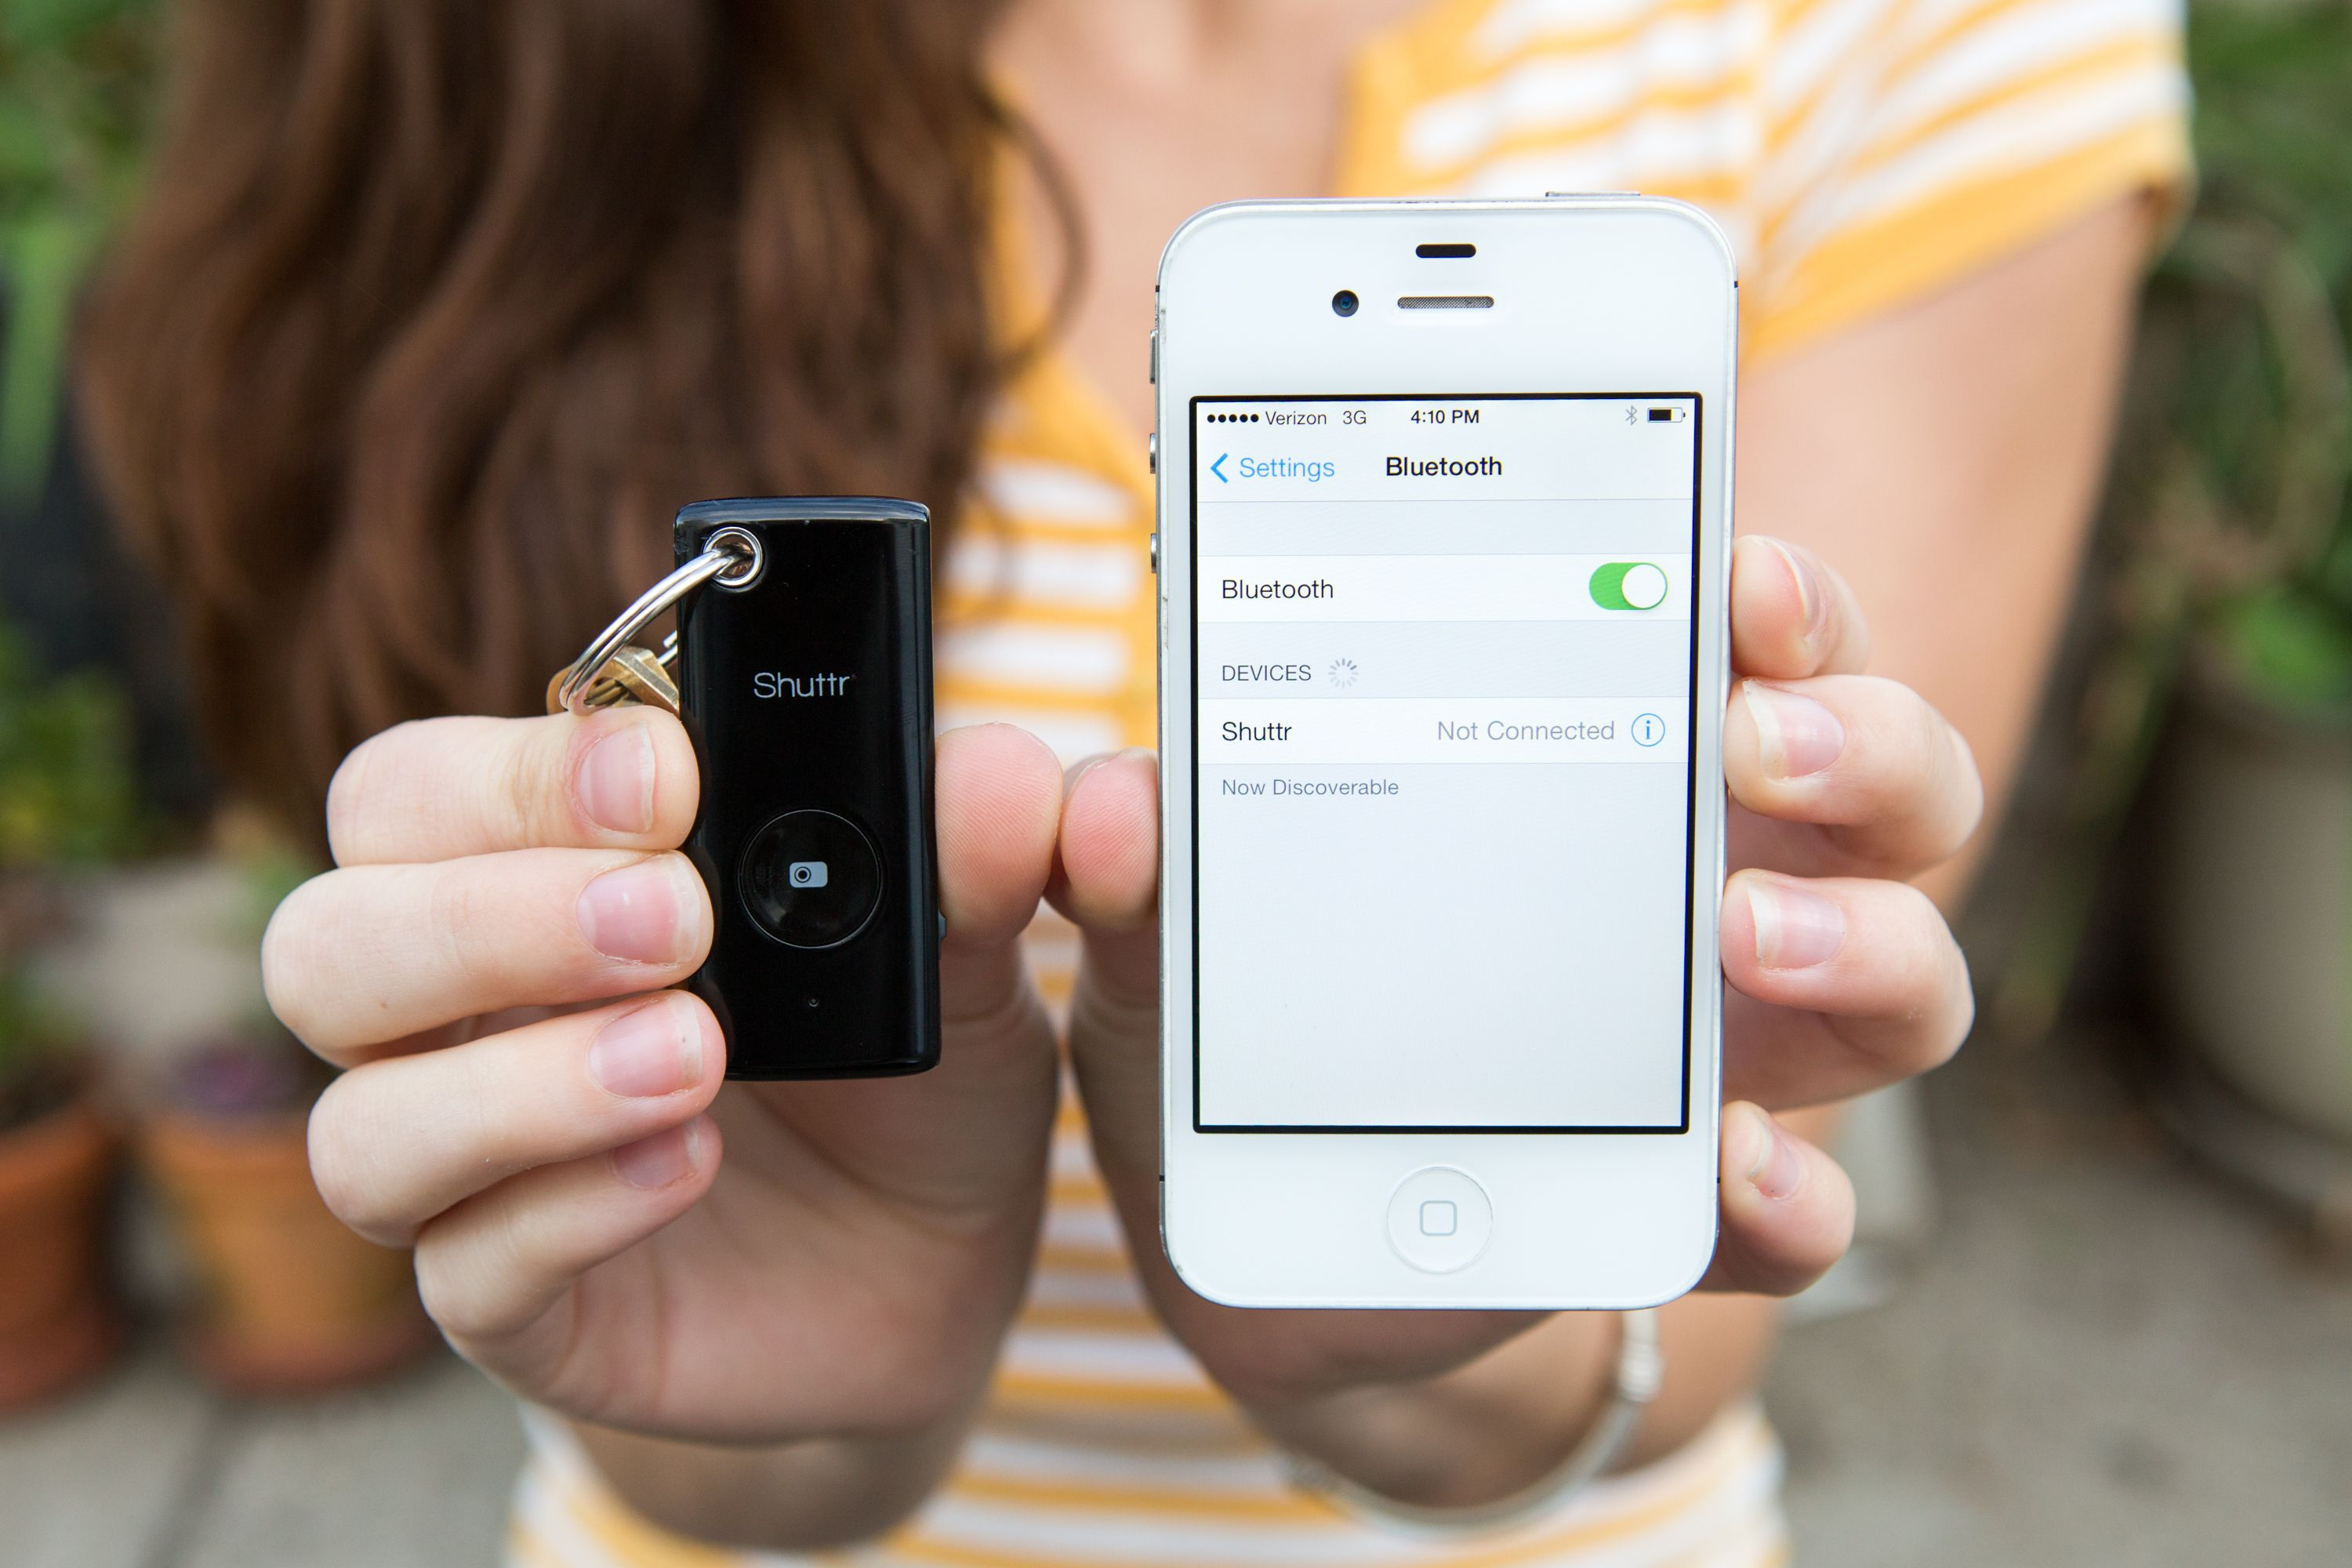 Muku shuttr remote for iphone